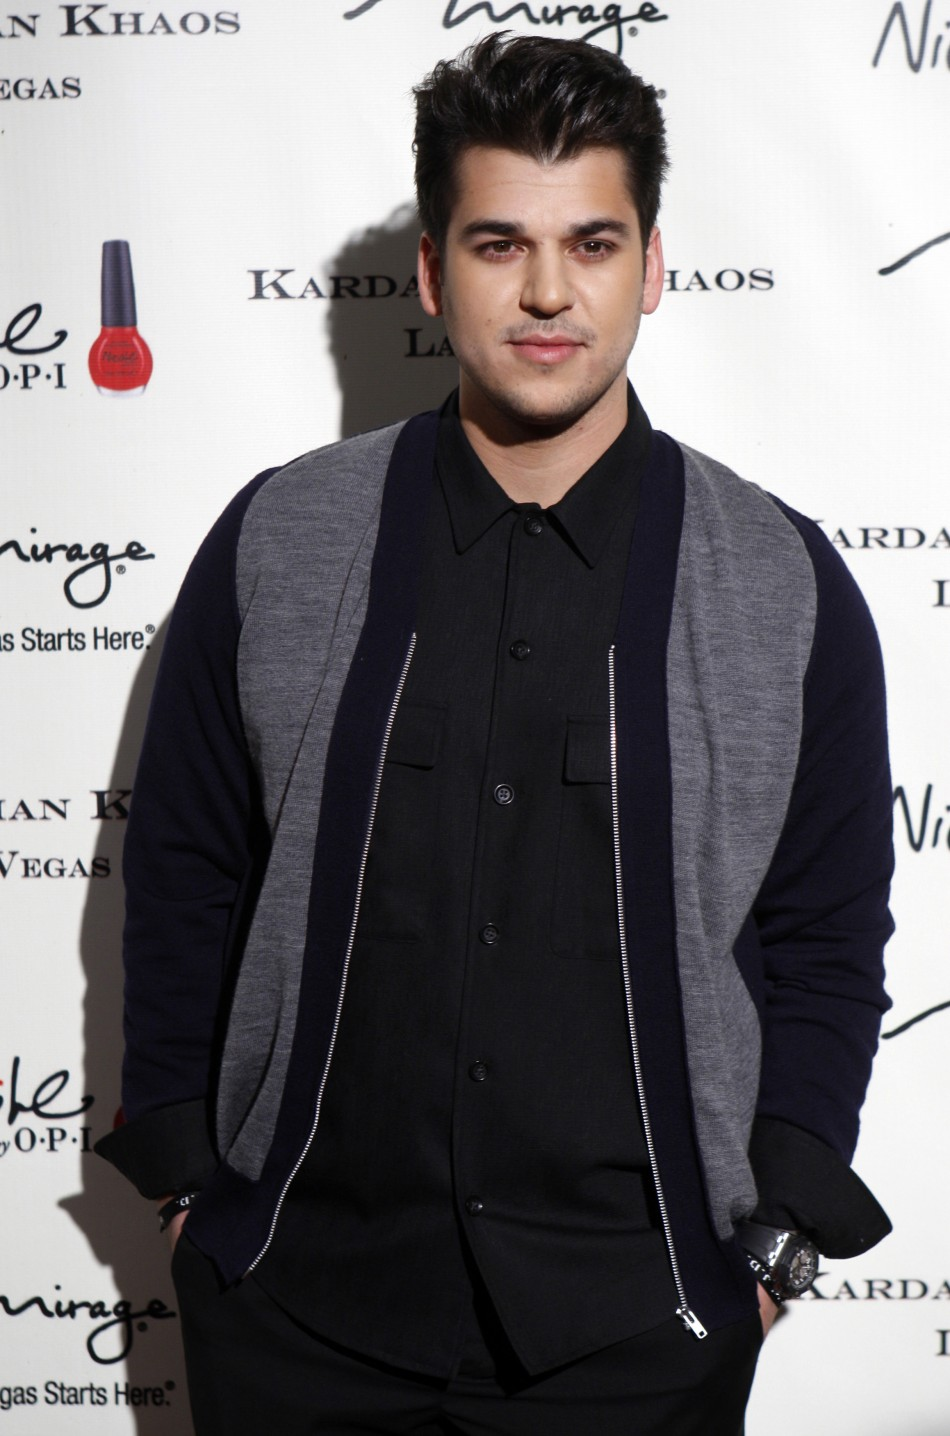 Rob Kardashian is said to be in touch with Lamar Odom, his sister Khloe's estranged husband.